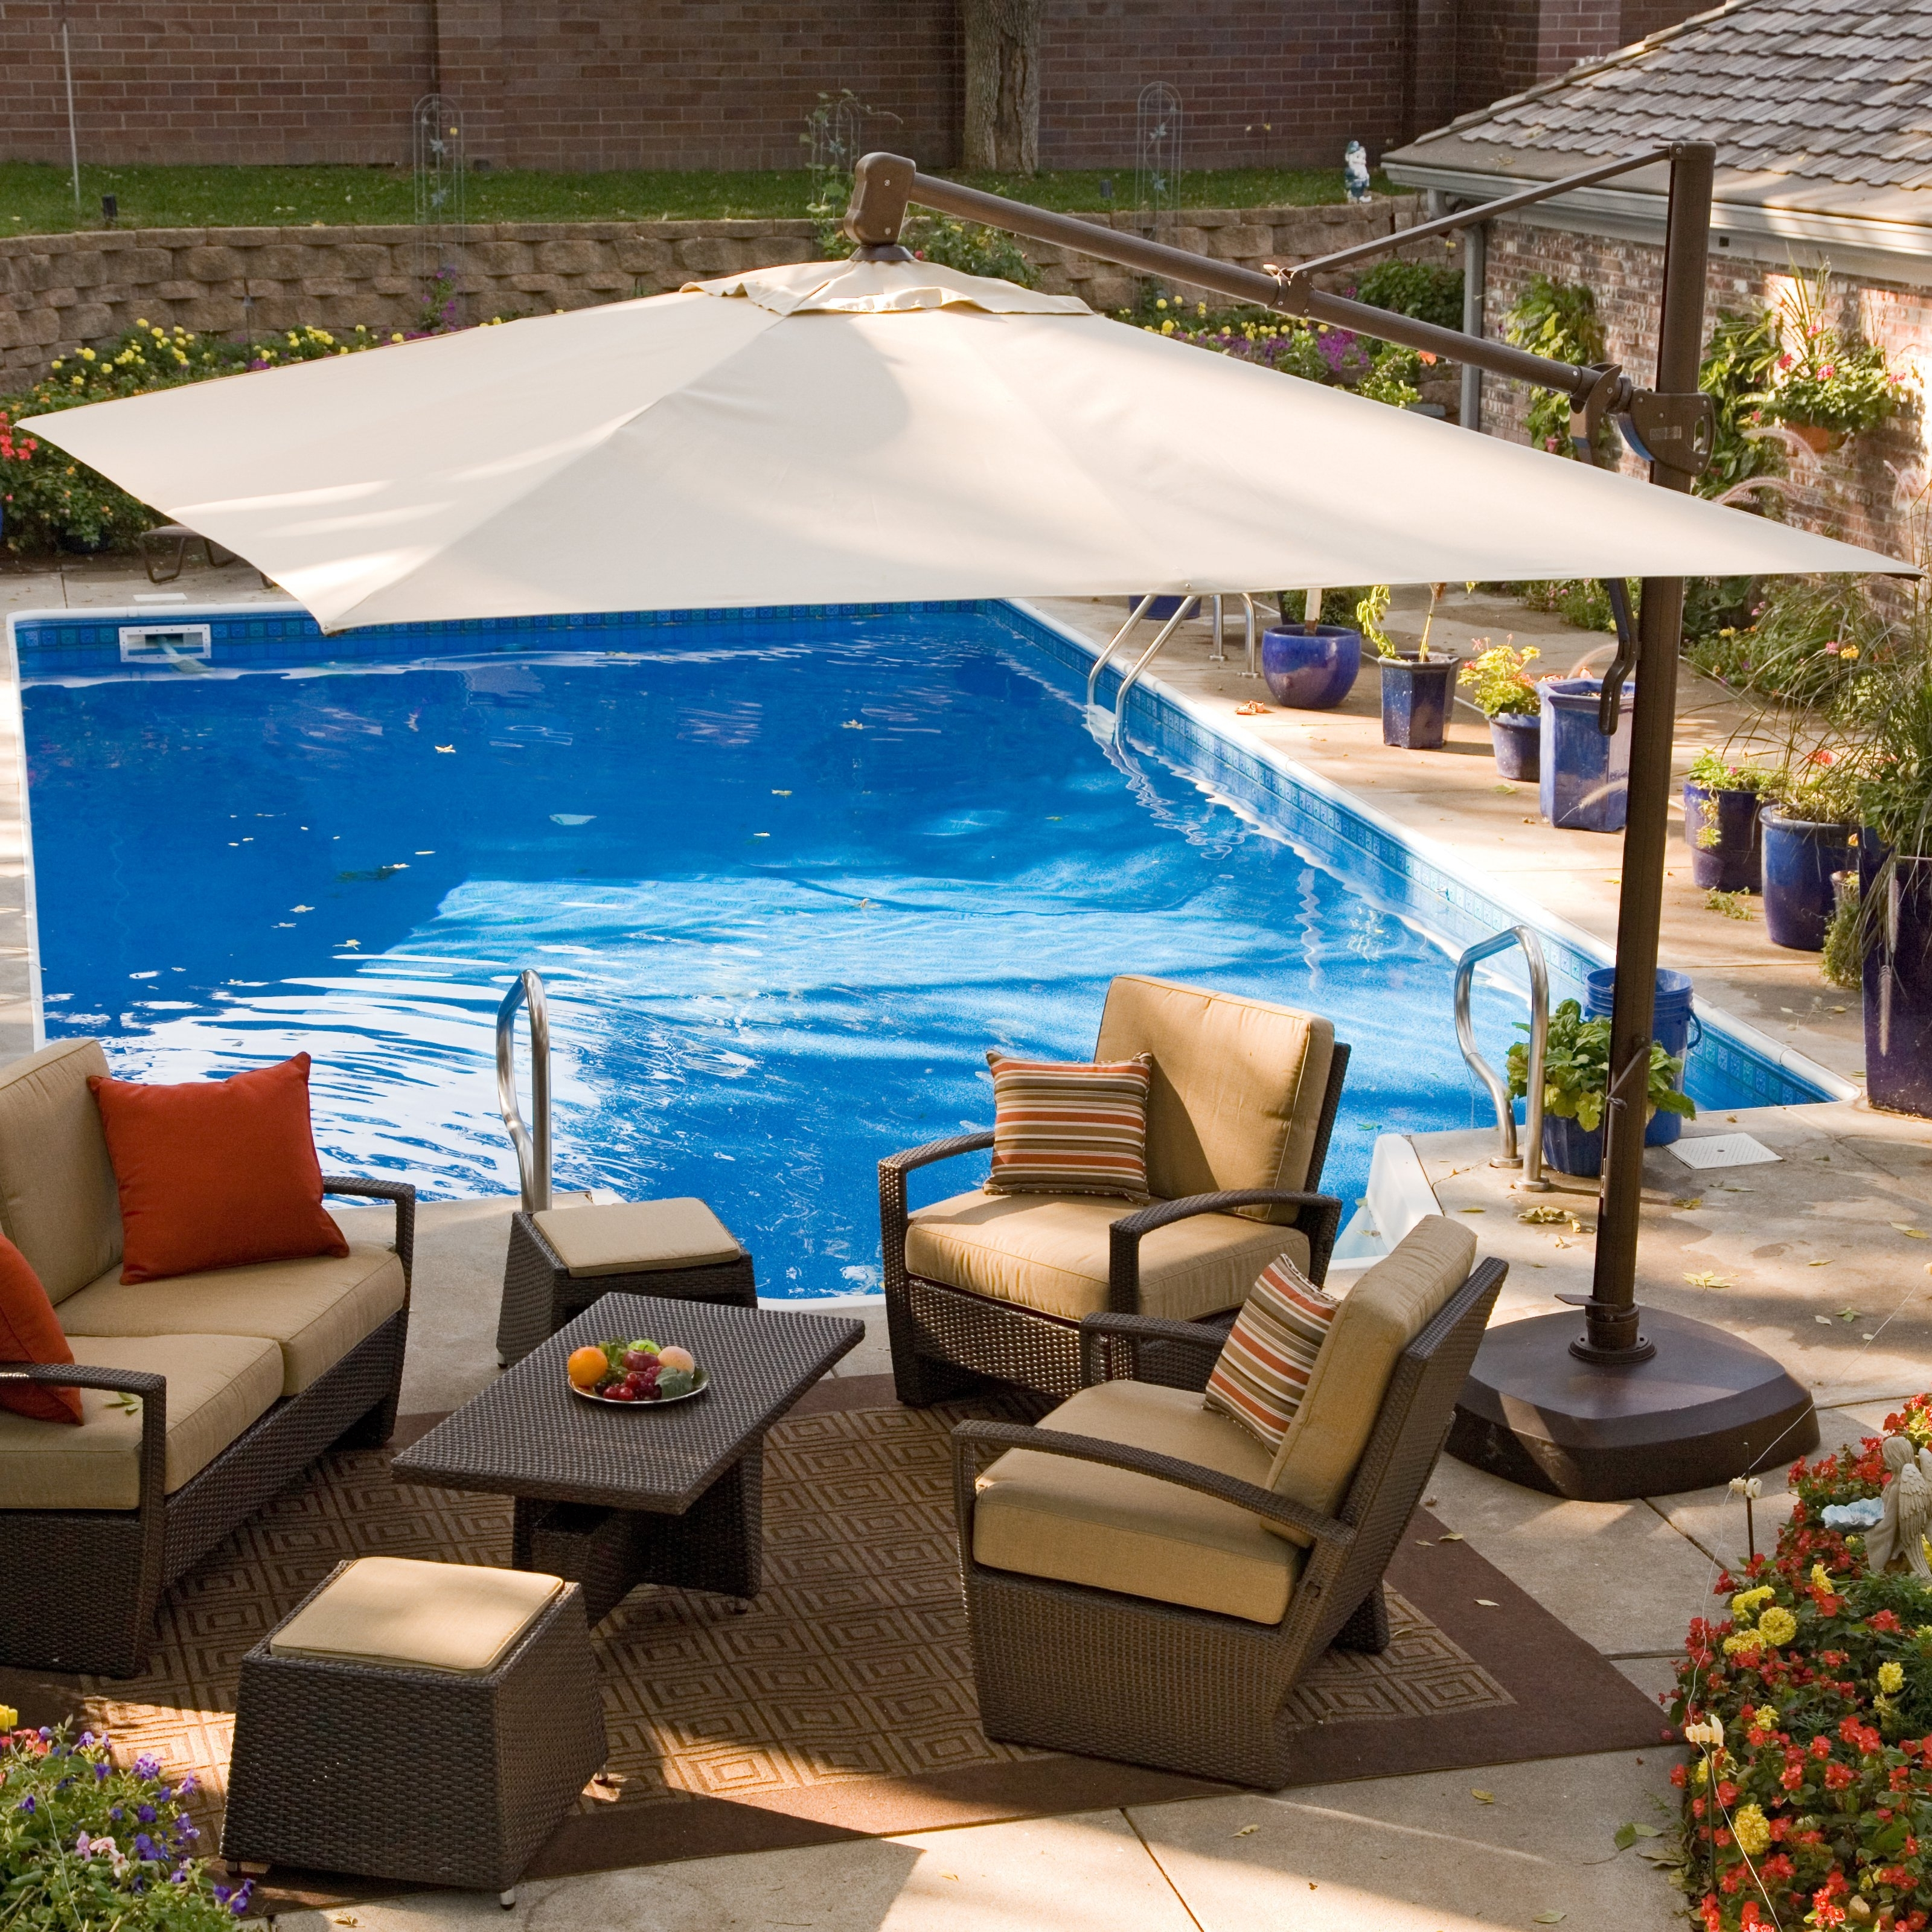 Best And Newest Patio Conversation Sets With Umbrella Intended For Patio Ideas: Heavy Duty Patio Umbrella With White Patio Umbrella And (View 11 of 15)